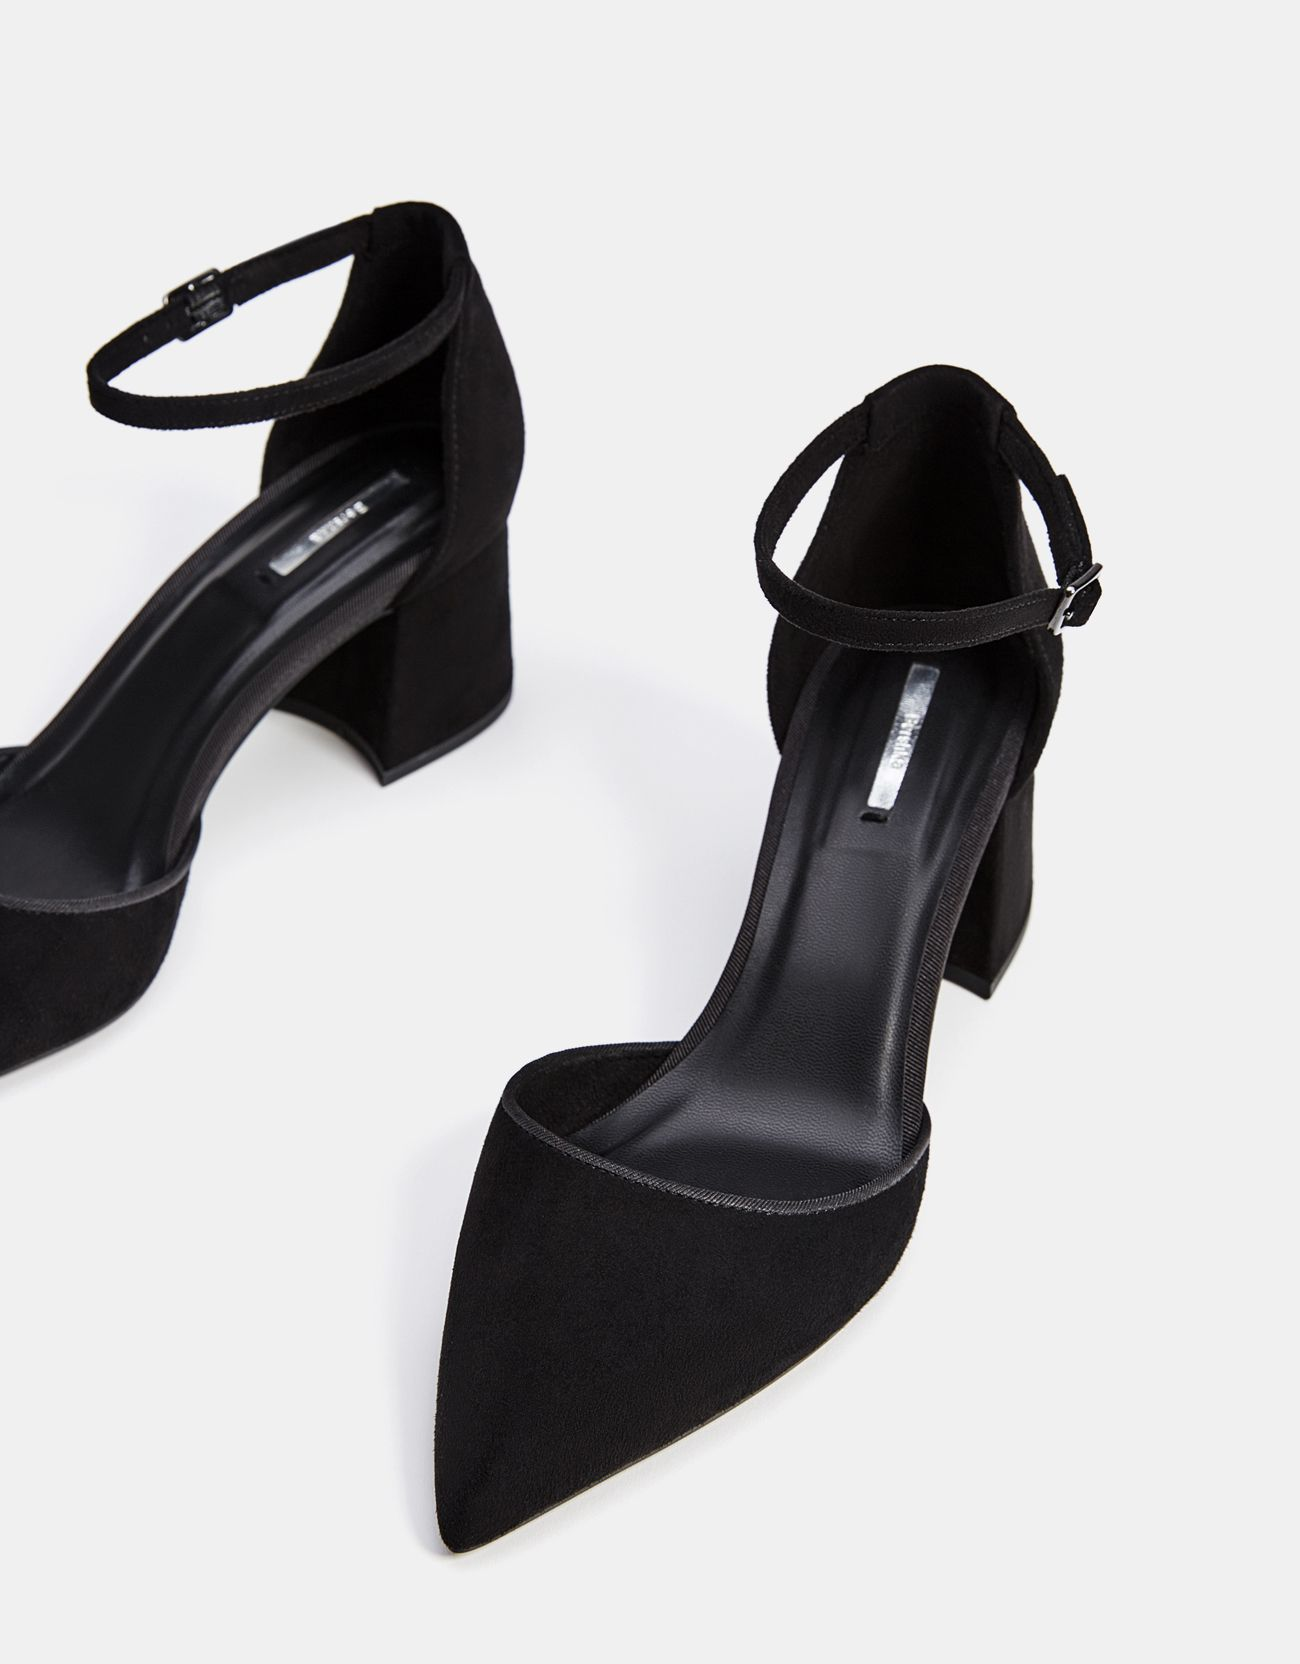 20855f80aa263 Mid-heel shoes with ankle straps. Discover this and many more items in  Bershka with new products every week